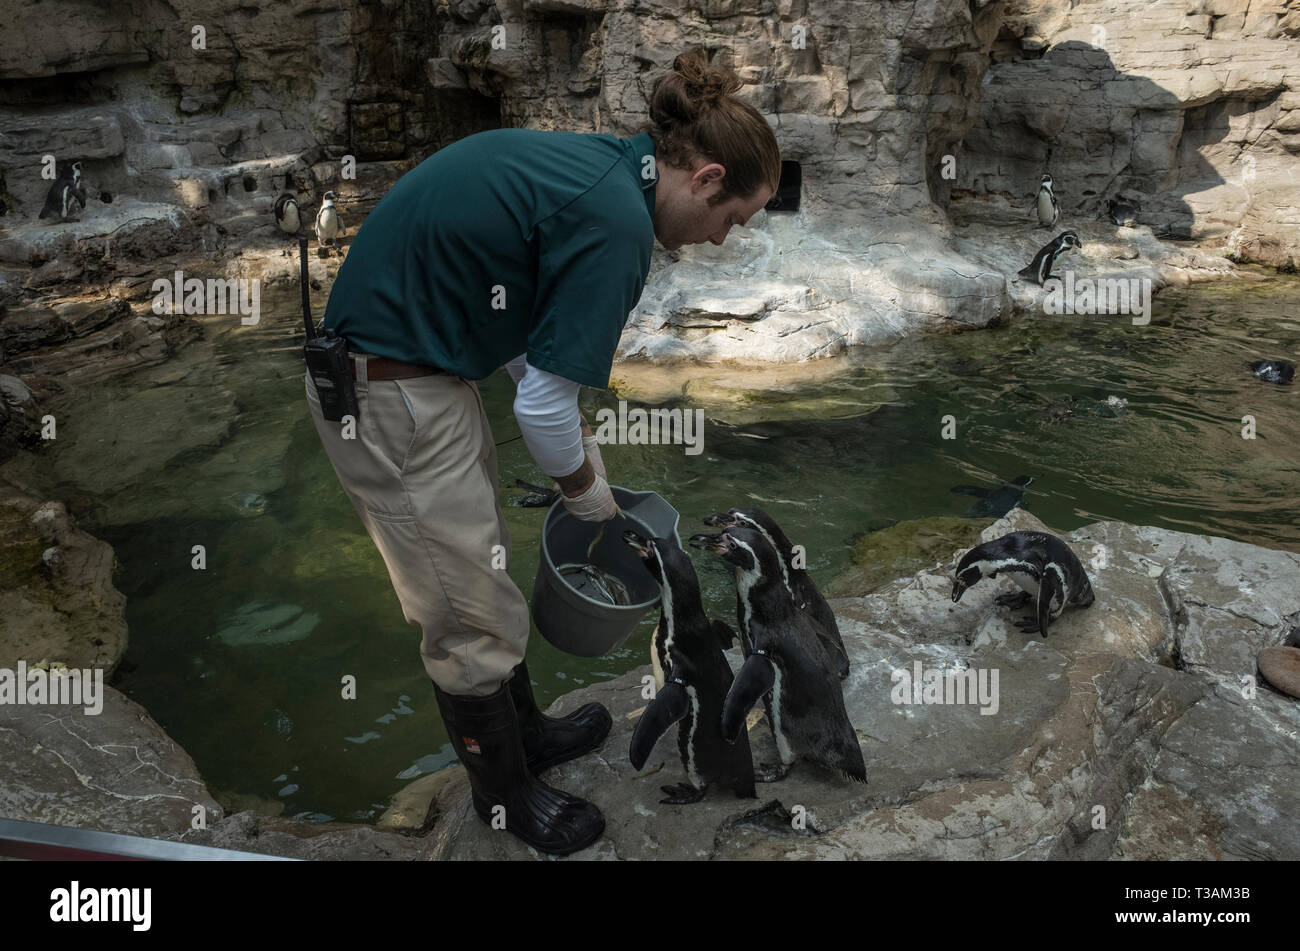 A zoo keeper feeds penguins fish at the St. Louis Zoo in the state of Missouri - Stock Image